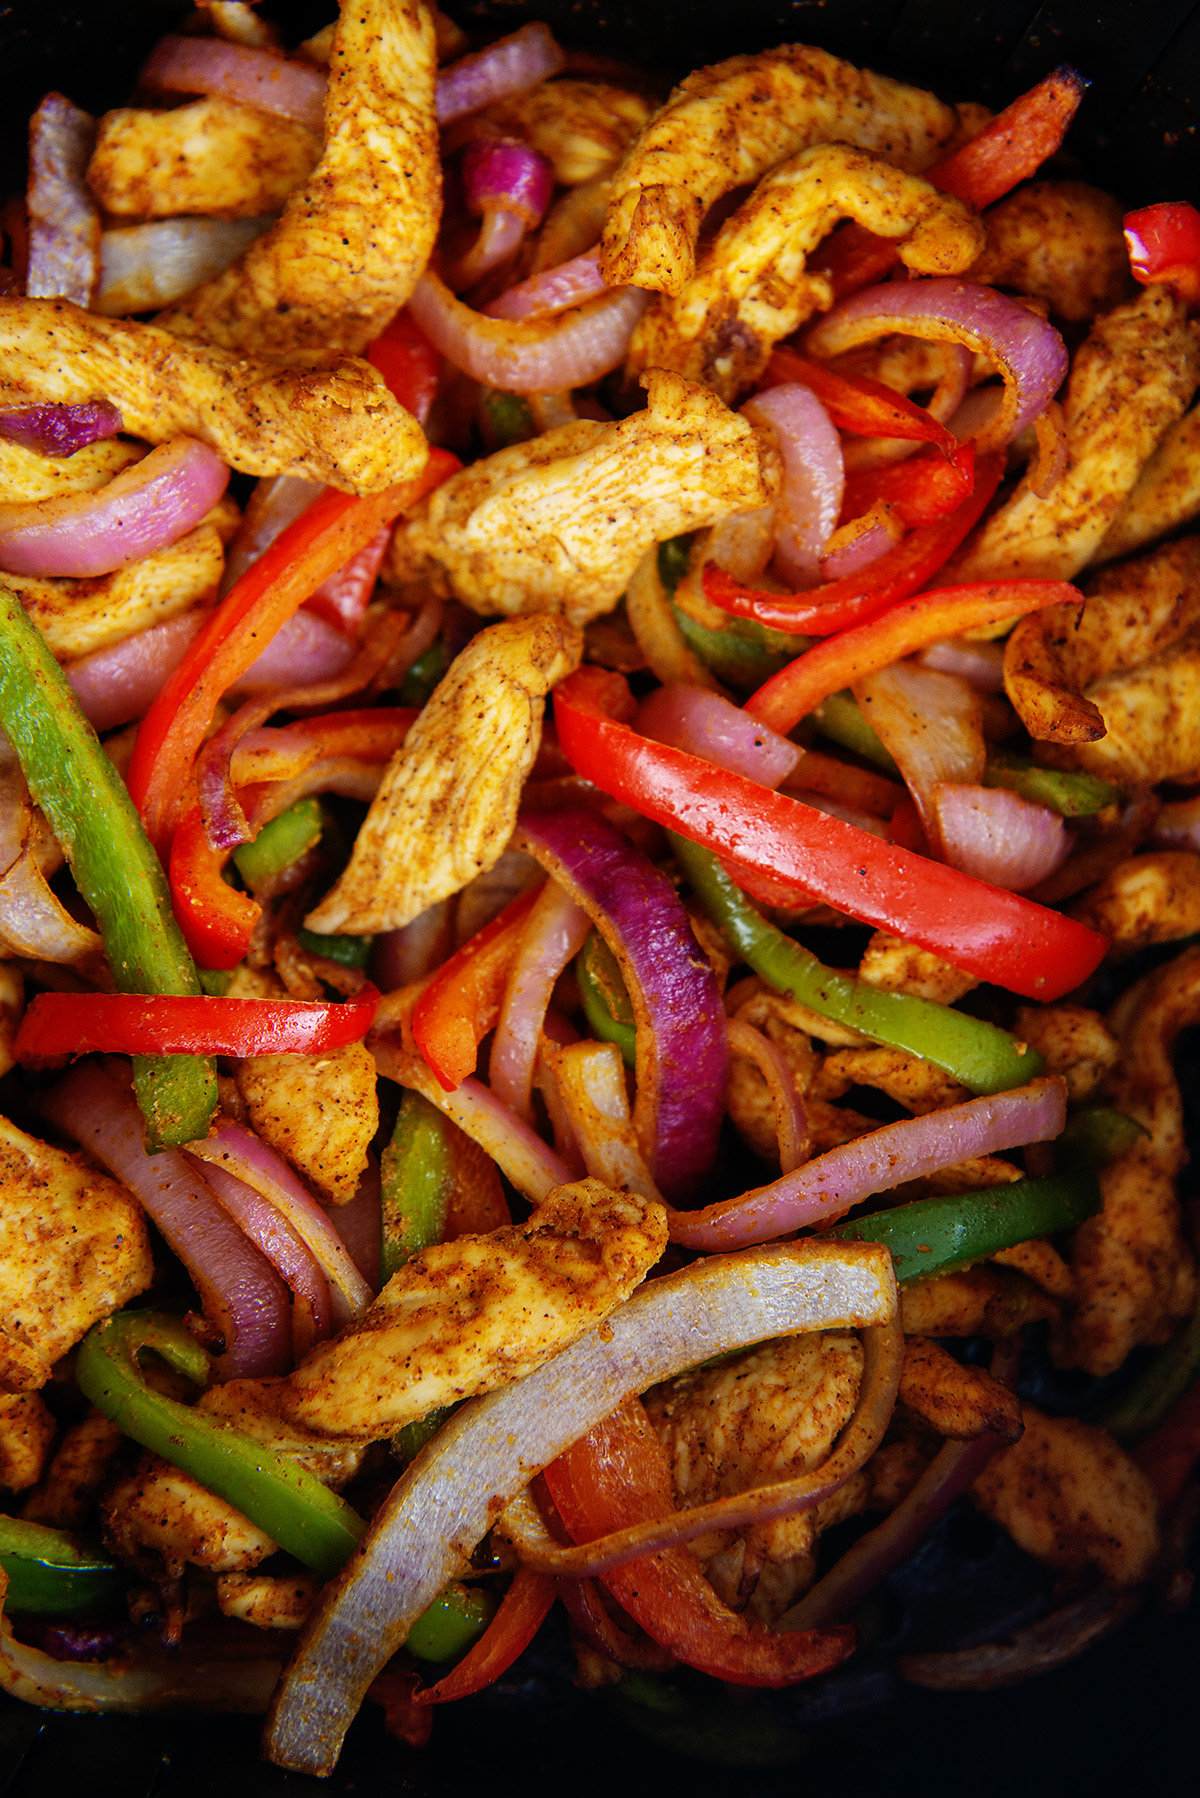 Close up of cooked chicken fajita ingredients